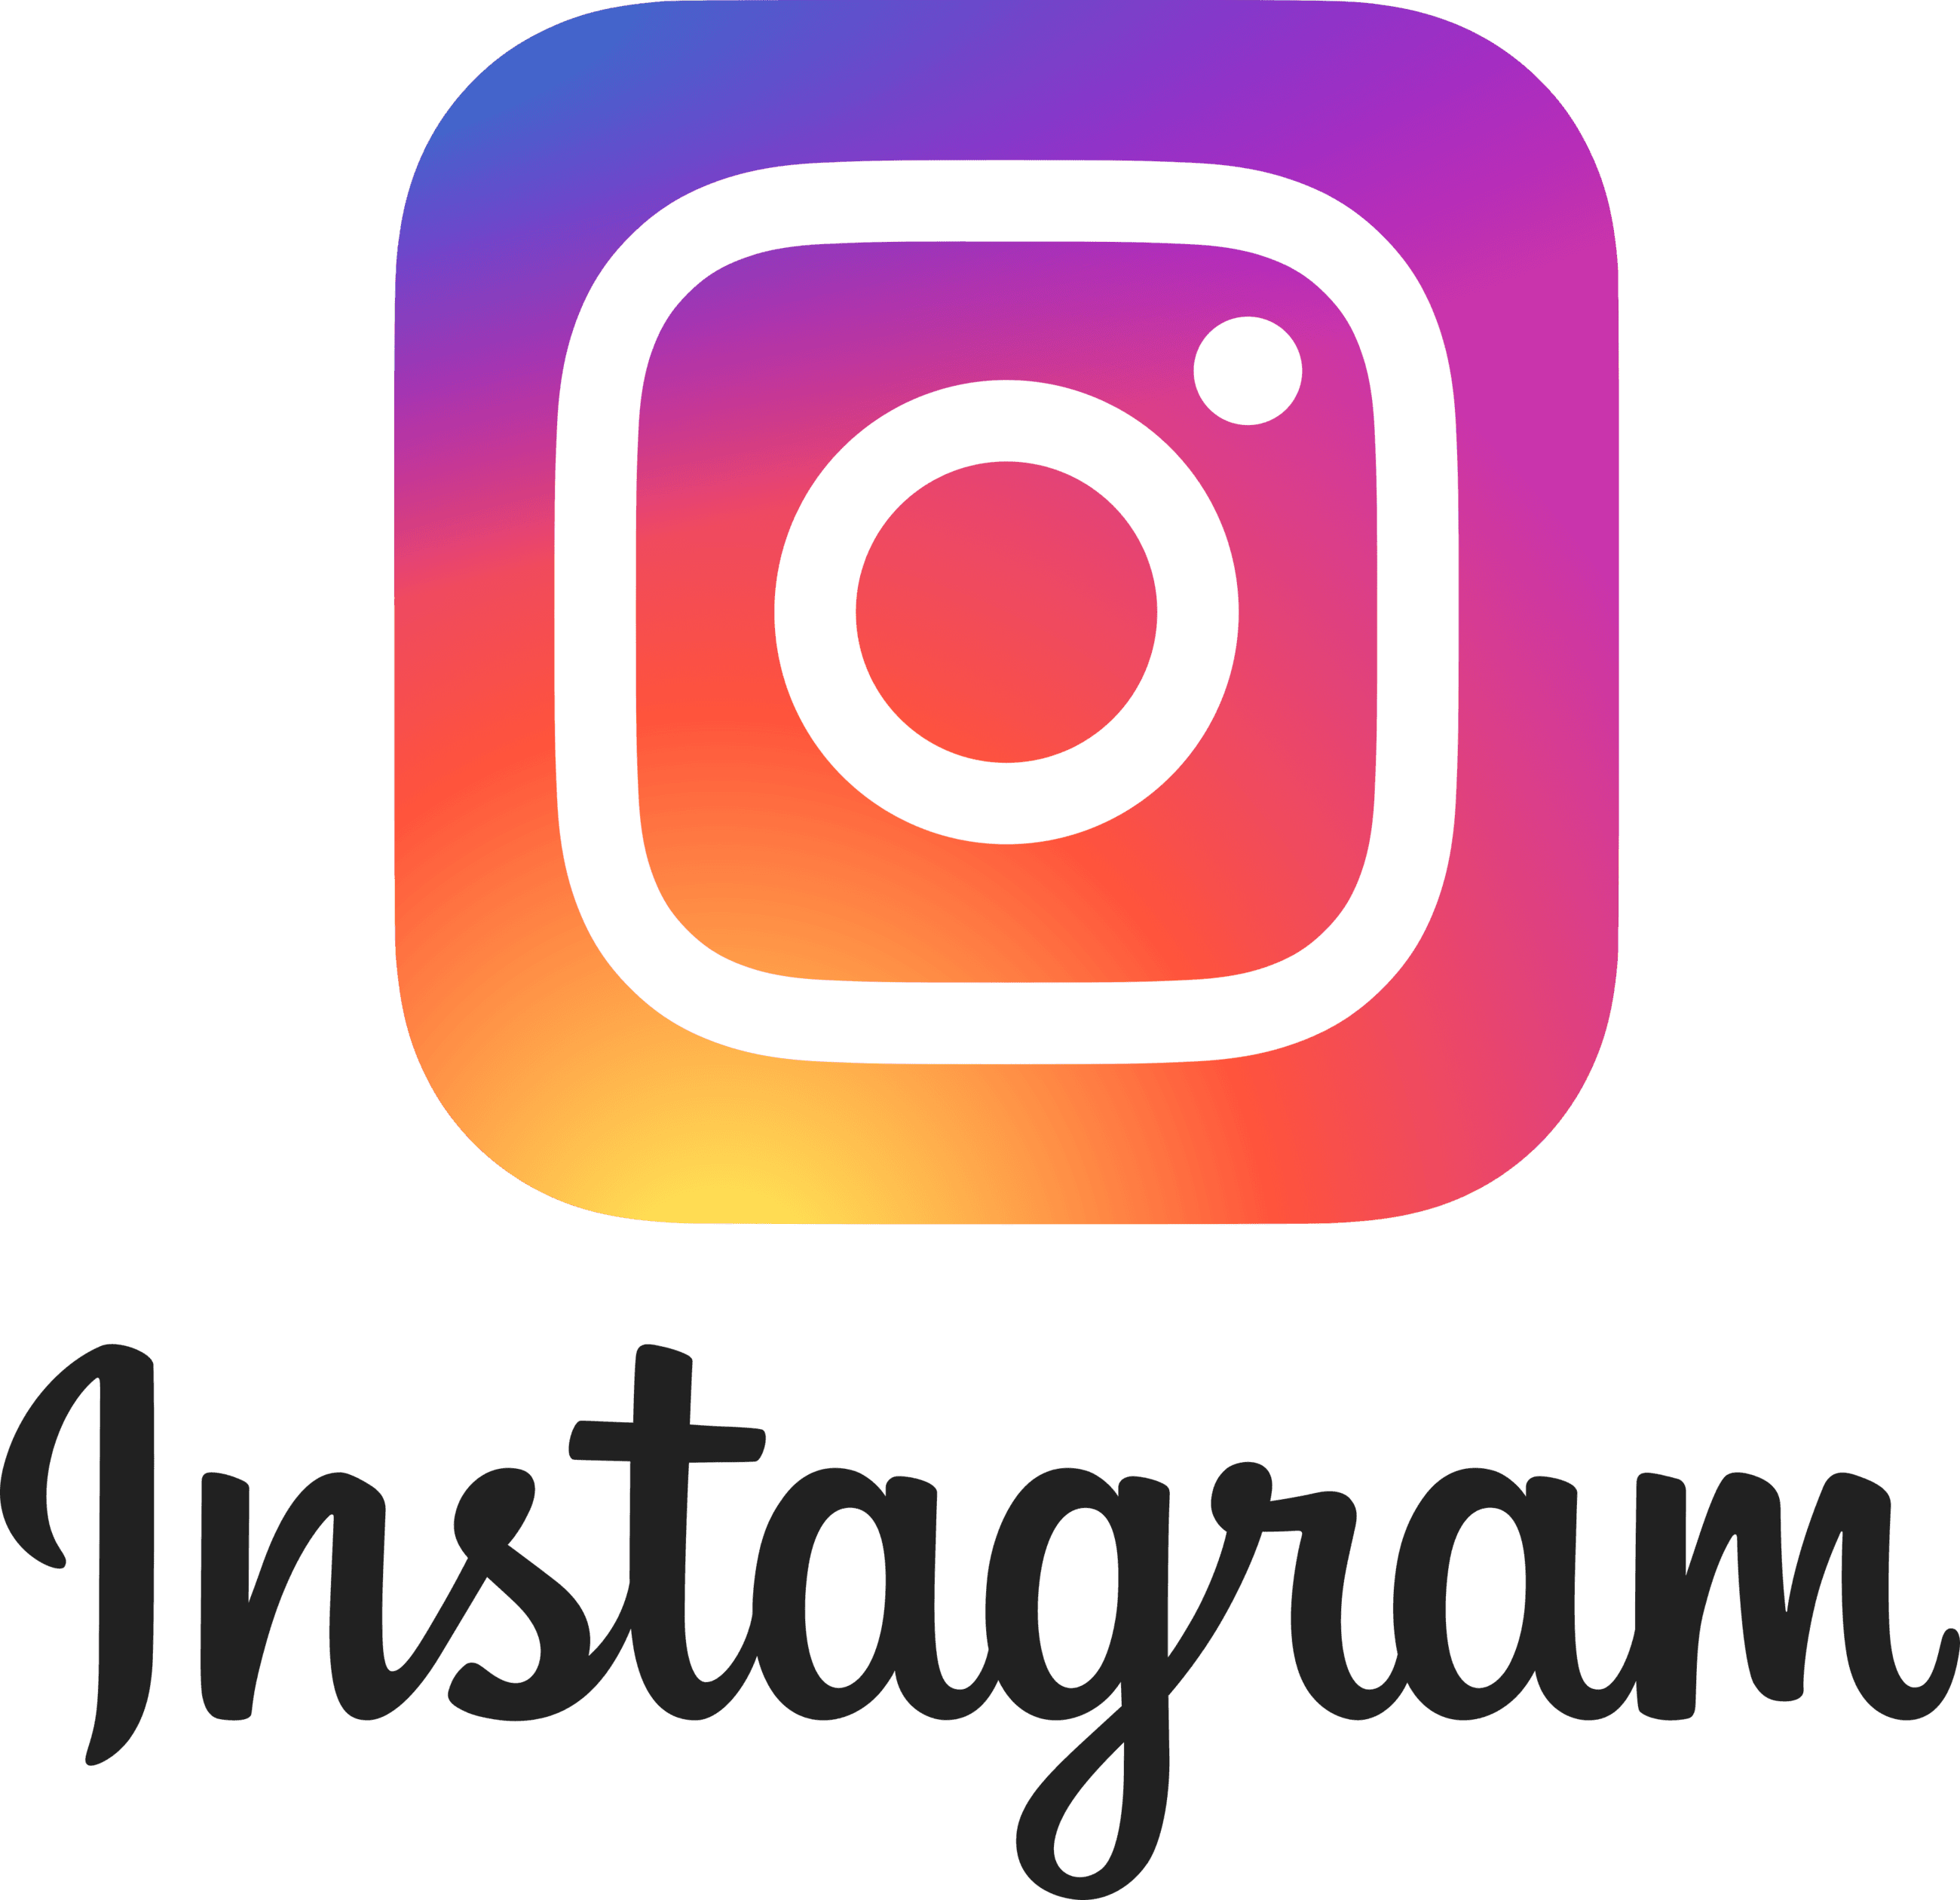 Instagram Text and Logo PNG